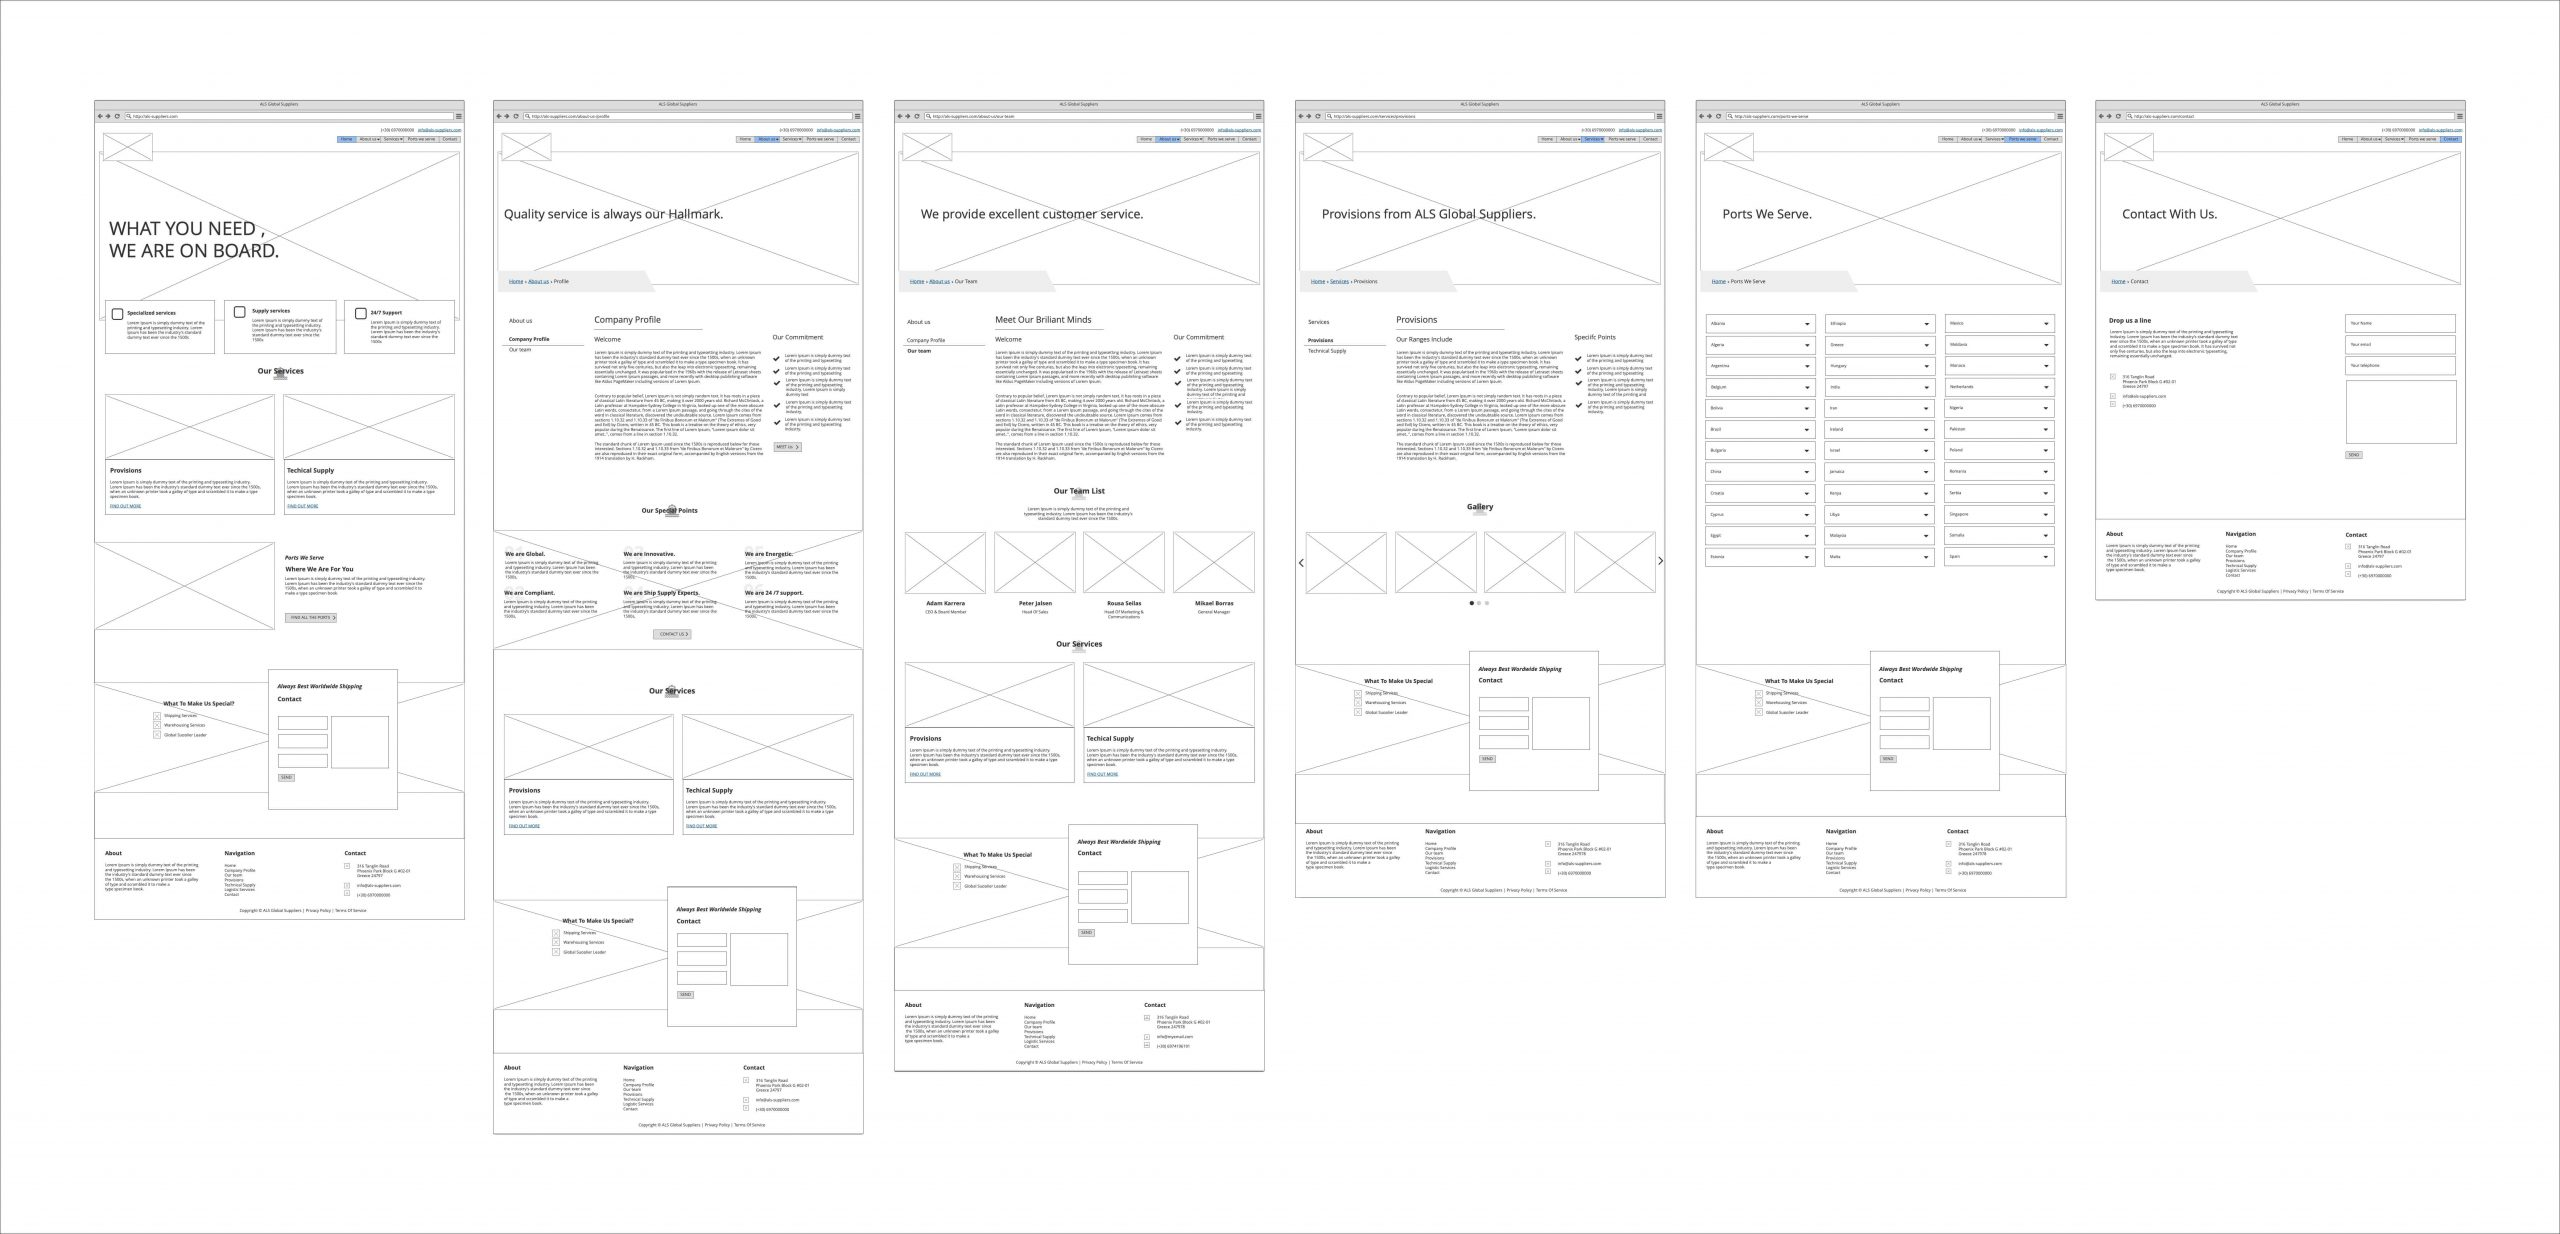 The mid-Fidelity wireframes of ALS Suppliers